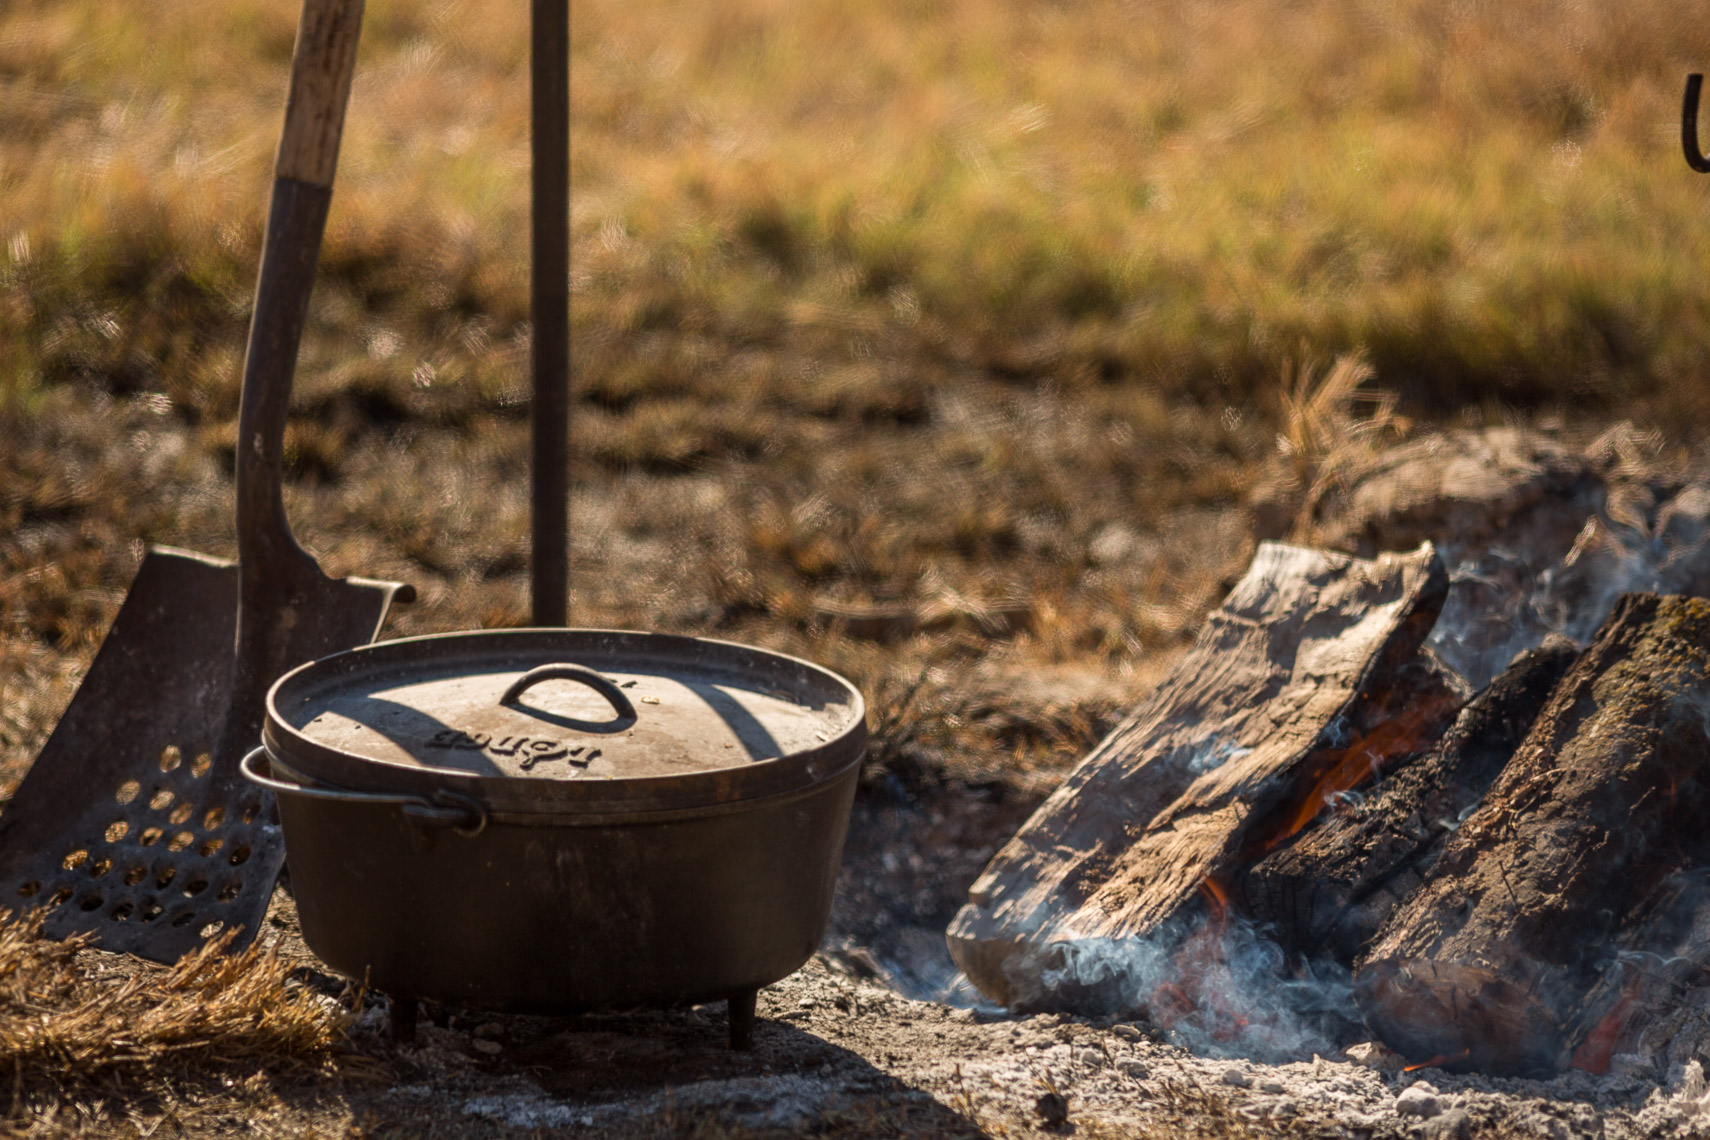 Chuck-Wagon-Food-Cooking-South-Texas-Ranch-Jason-Risner-Photographt-9341